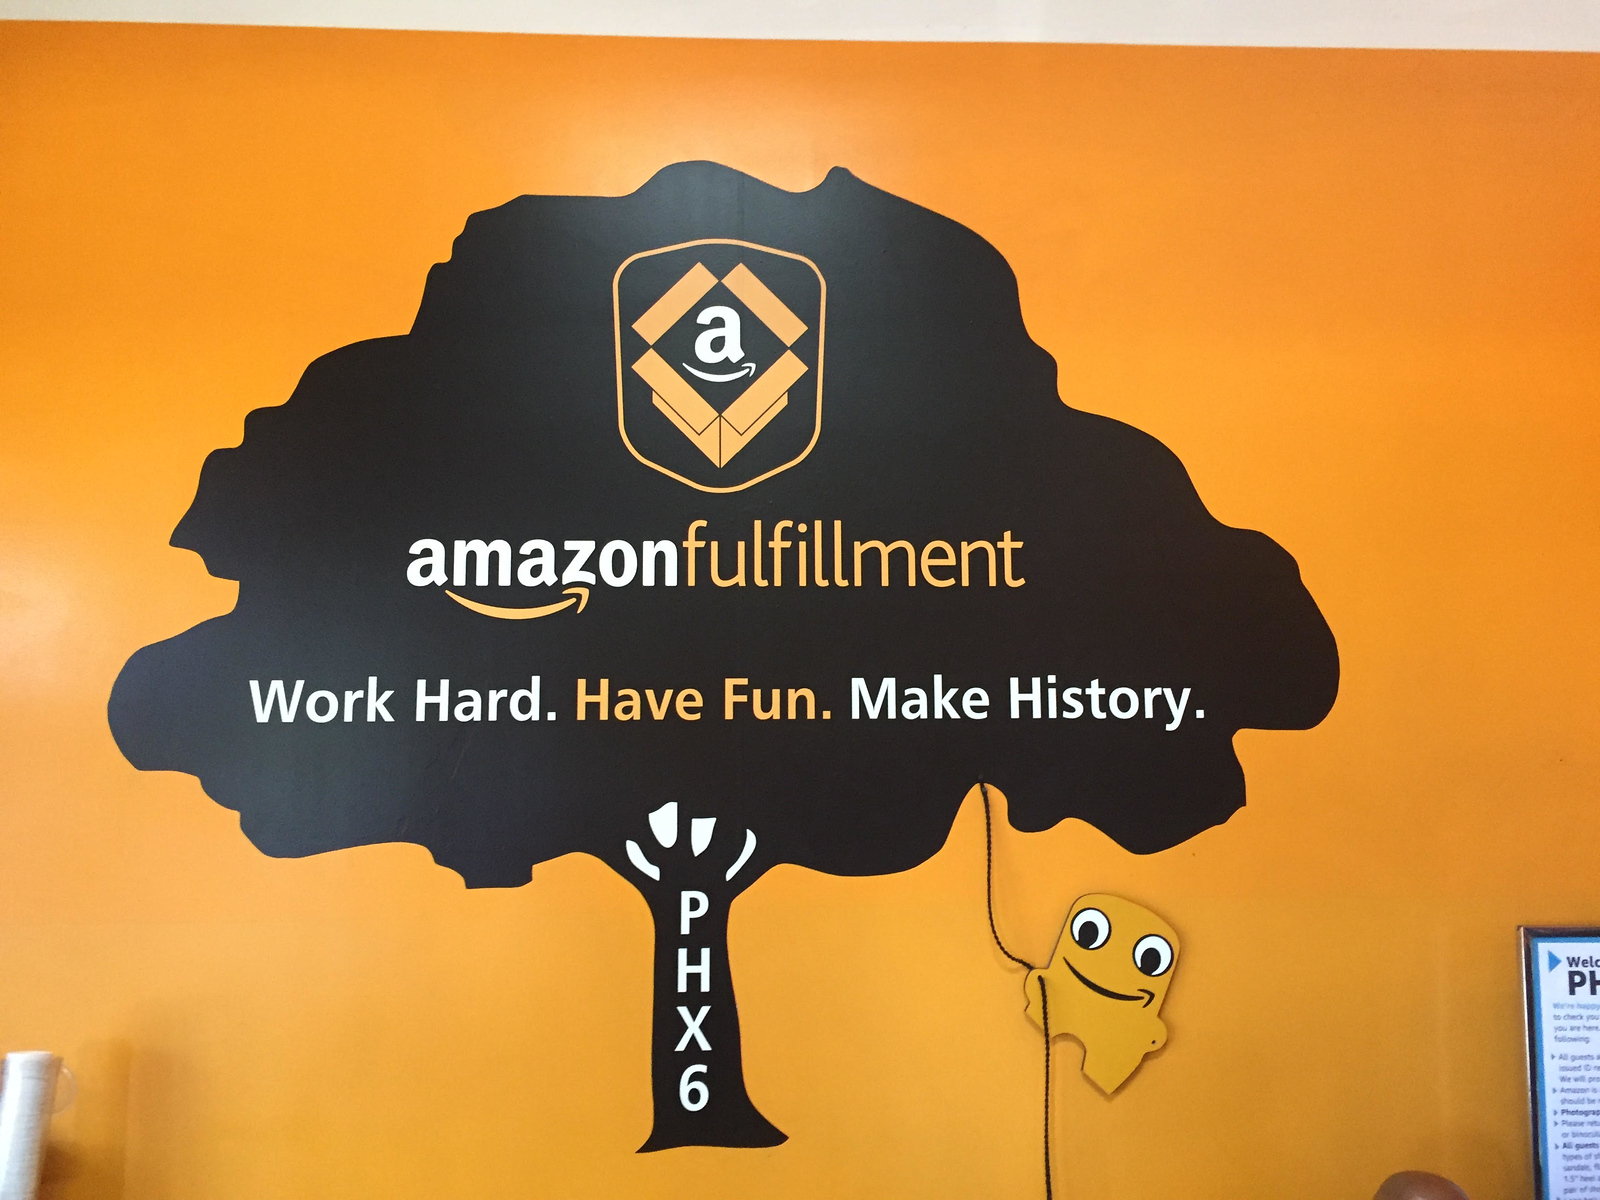 Amazon Phoenix Fulfillment sign in lobby